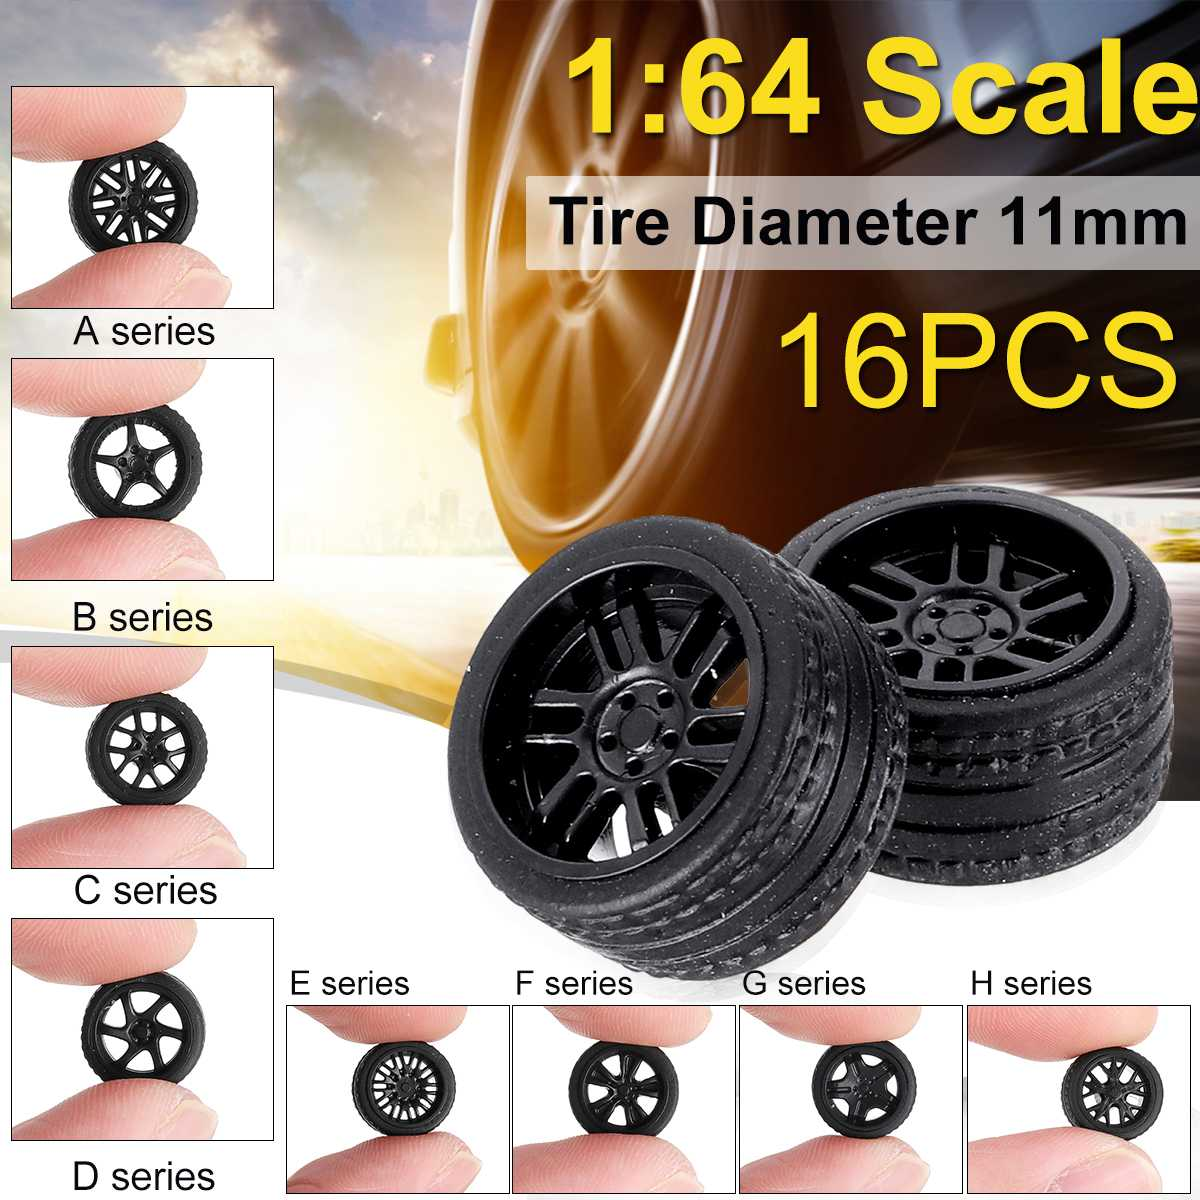 16PCS/Four Boxes ABS Rubber Wheels Tire Set Axles Vehicle Wheels Tire Modified Alloy Car Refit Wheels For 1/64 Vehicle Car Model